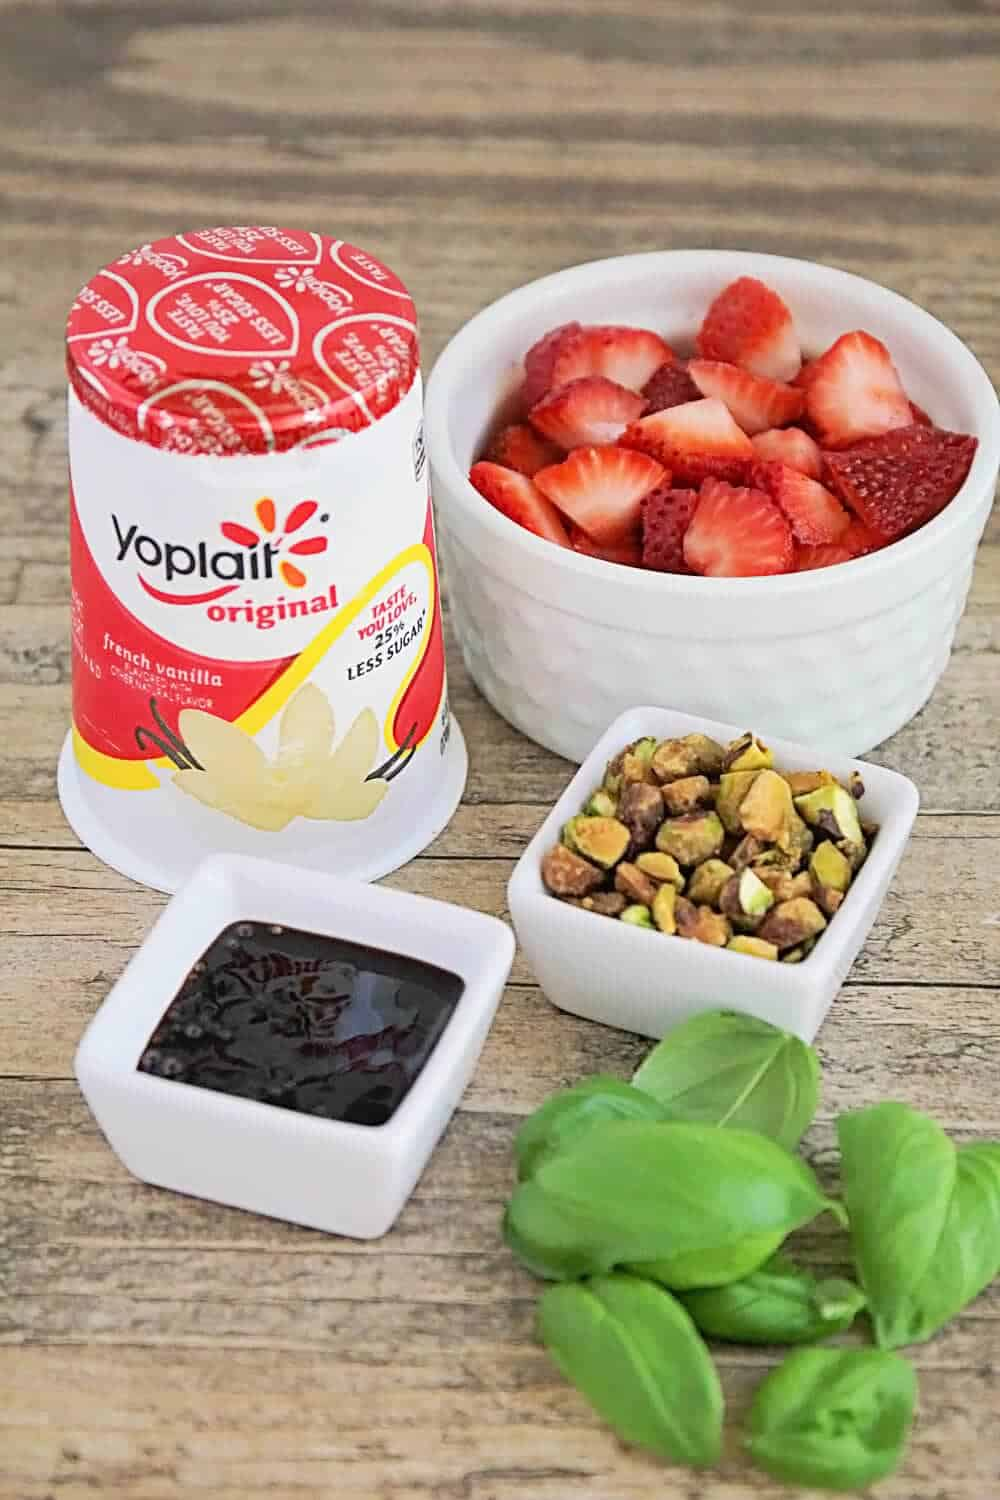 3 delicious ways to one up your yogurt - make a cup of yogurt into a delicious breakfast, snack, or dessert with simple add-ins like fresh and dried fruit, nuts, and coconut!